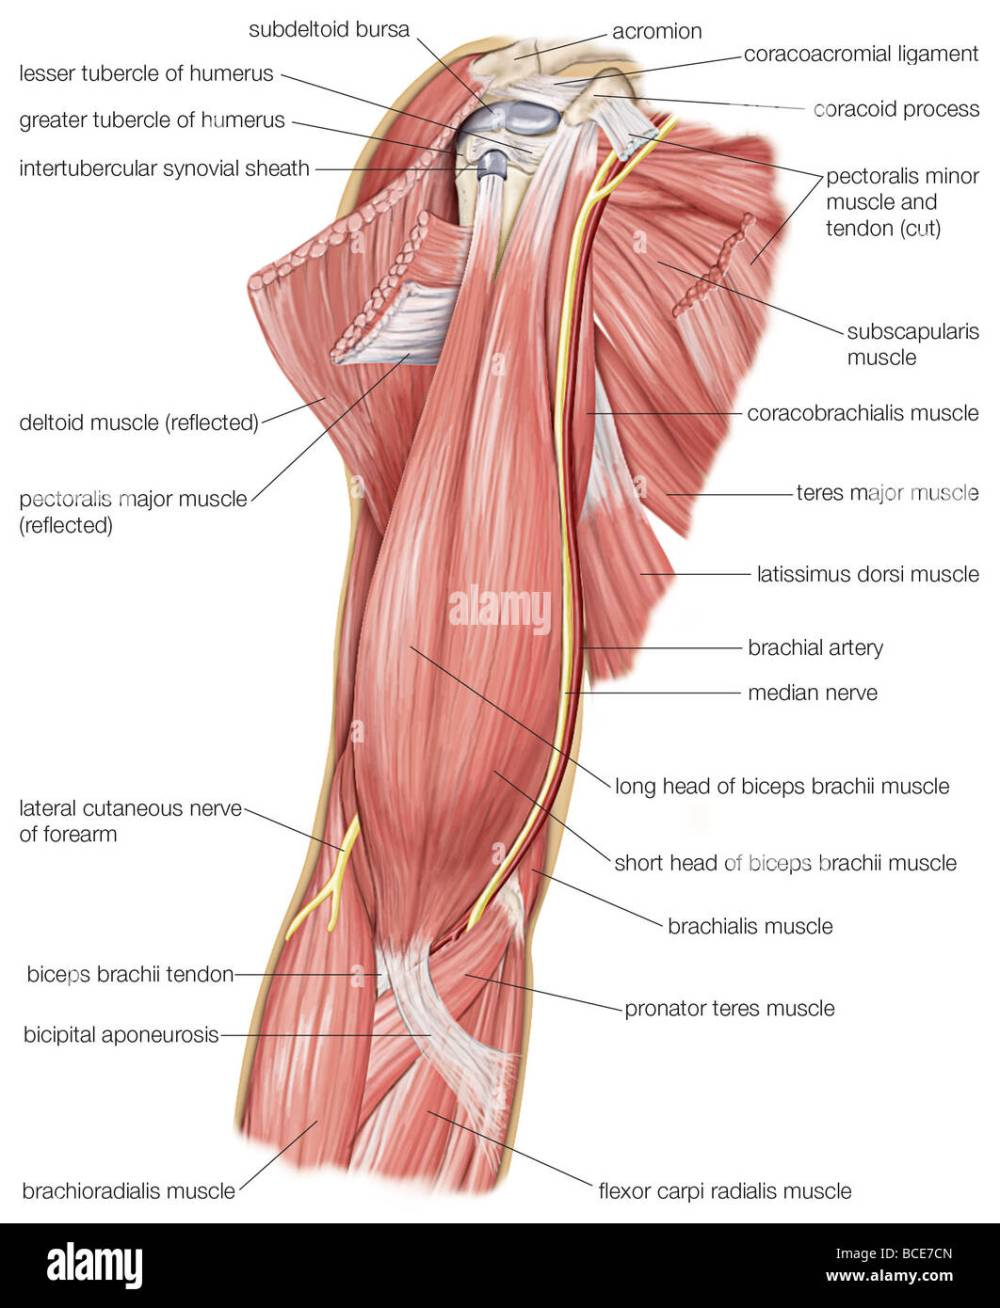 medium resolution of the muscles of the human upper arm as well as the cutaneous nerve and median nerve